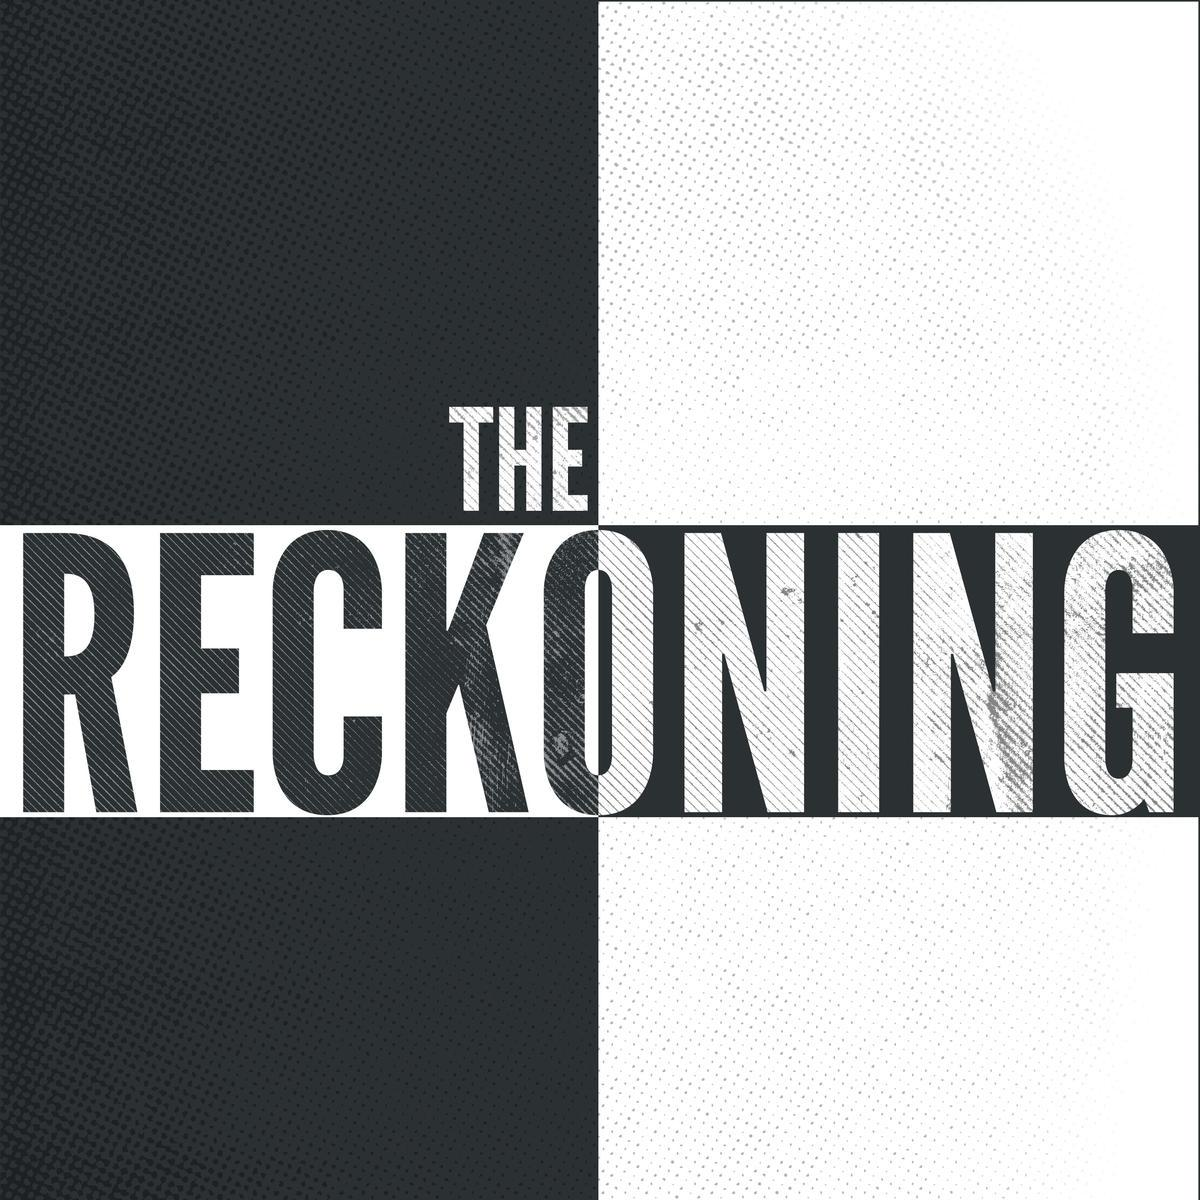 The Reckoning on a black and white background